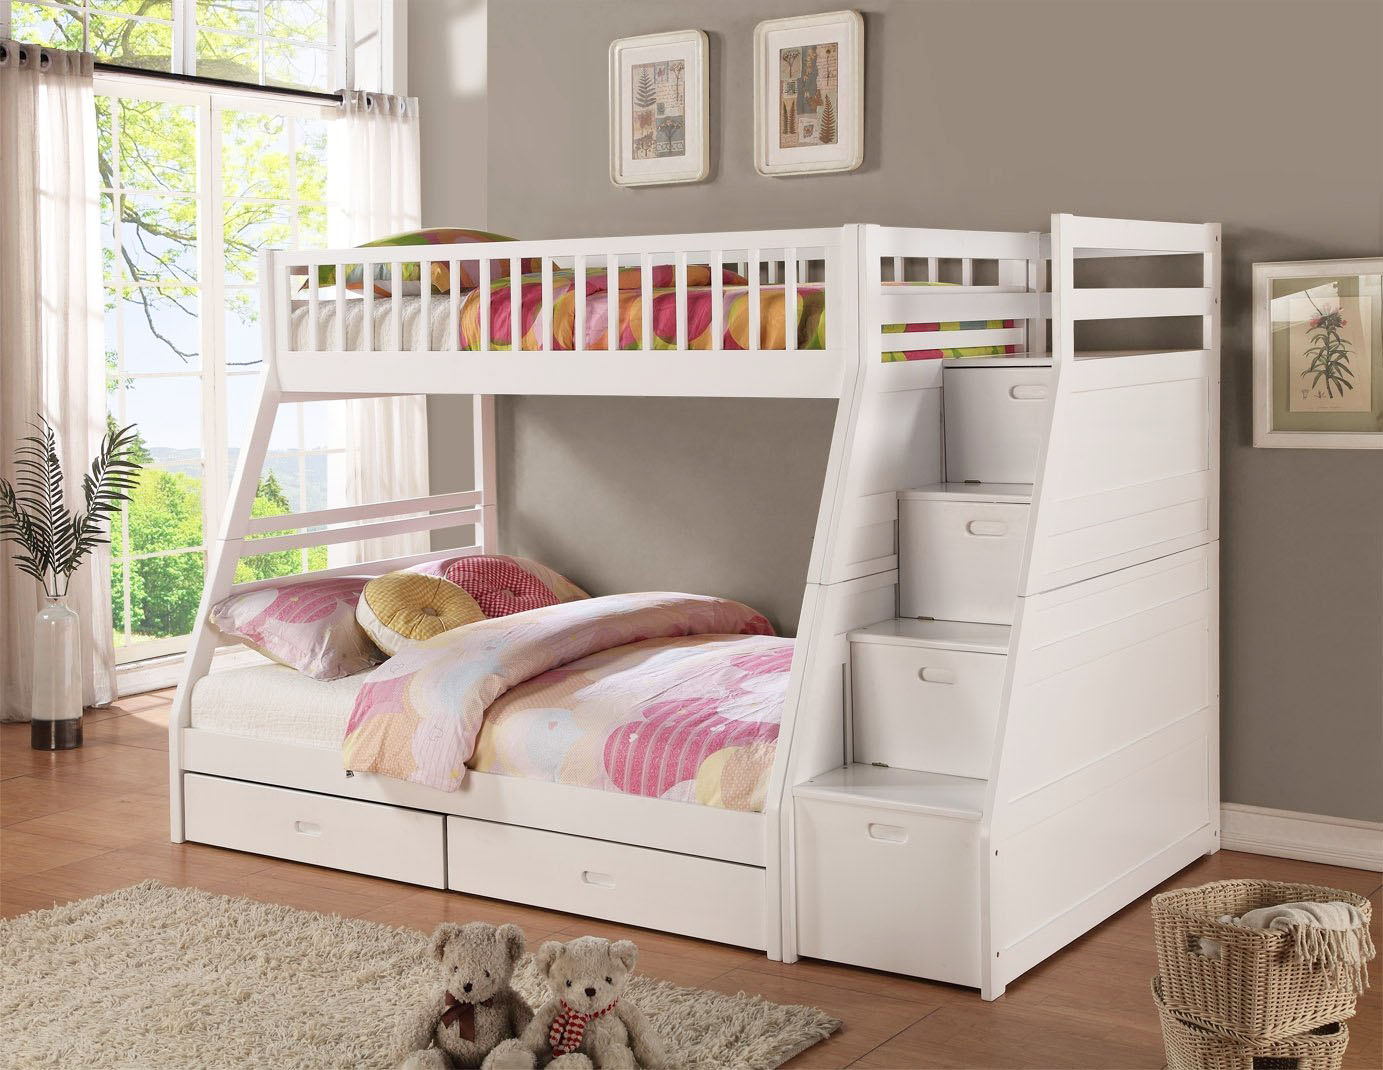 Practical Kids Bunk Beds With Stairway Storage